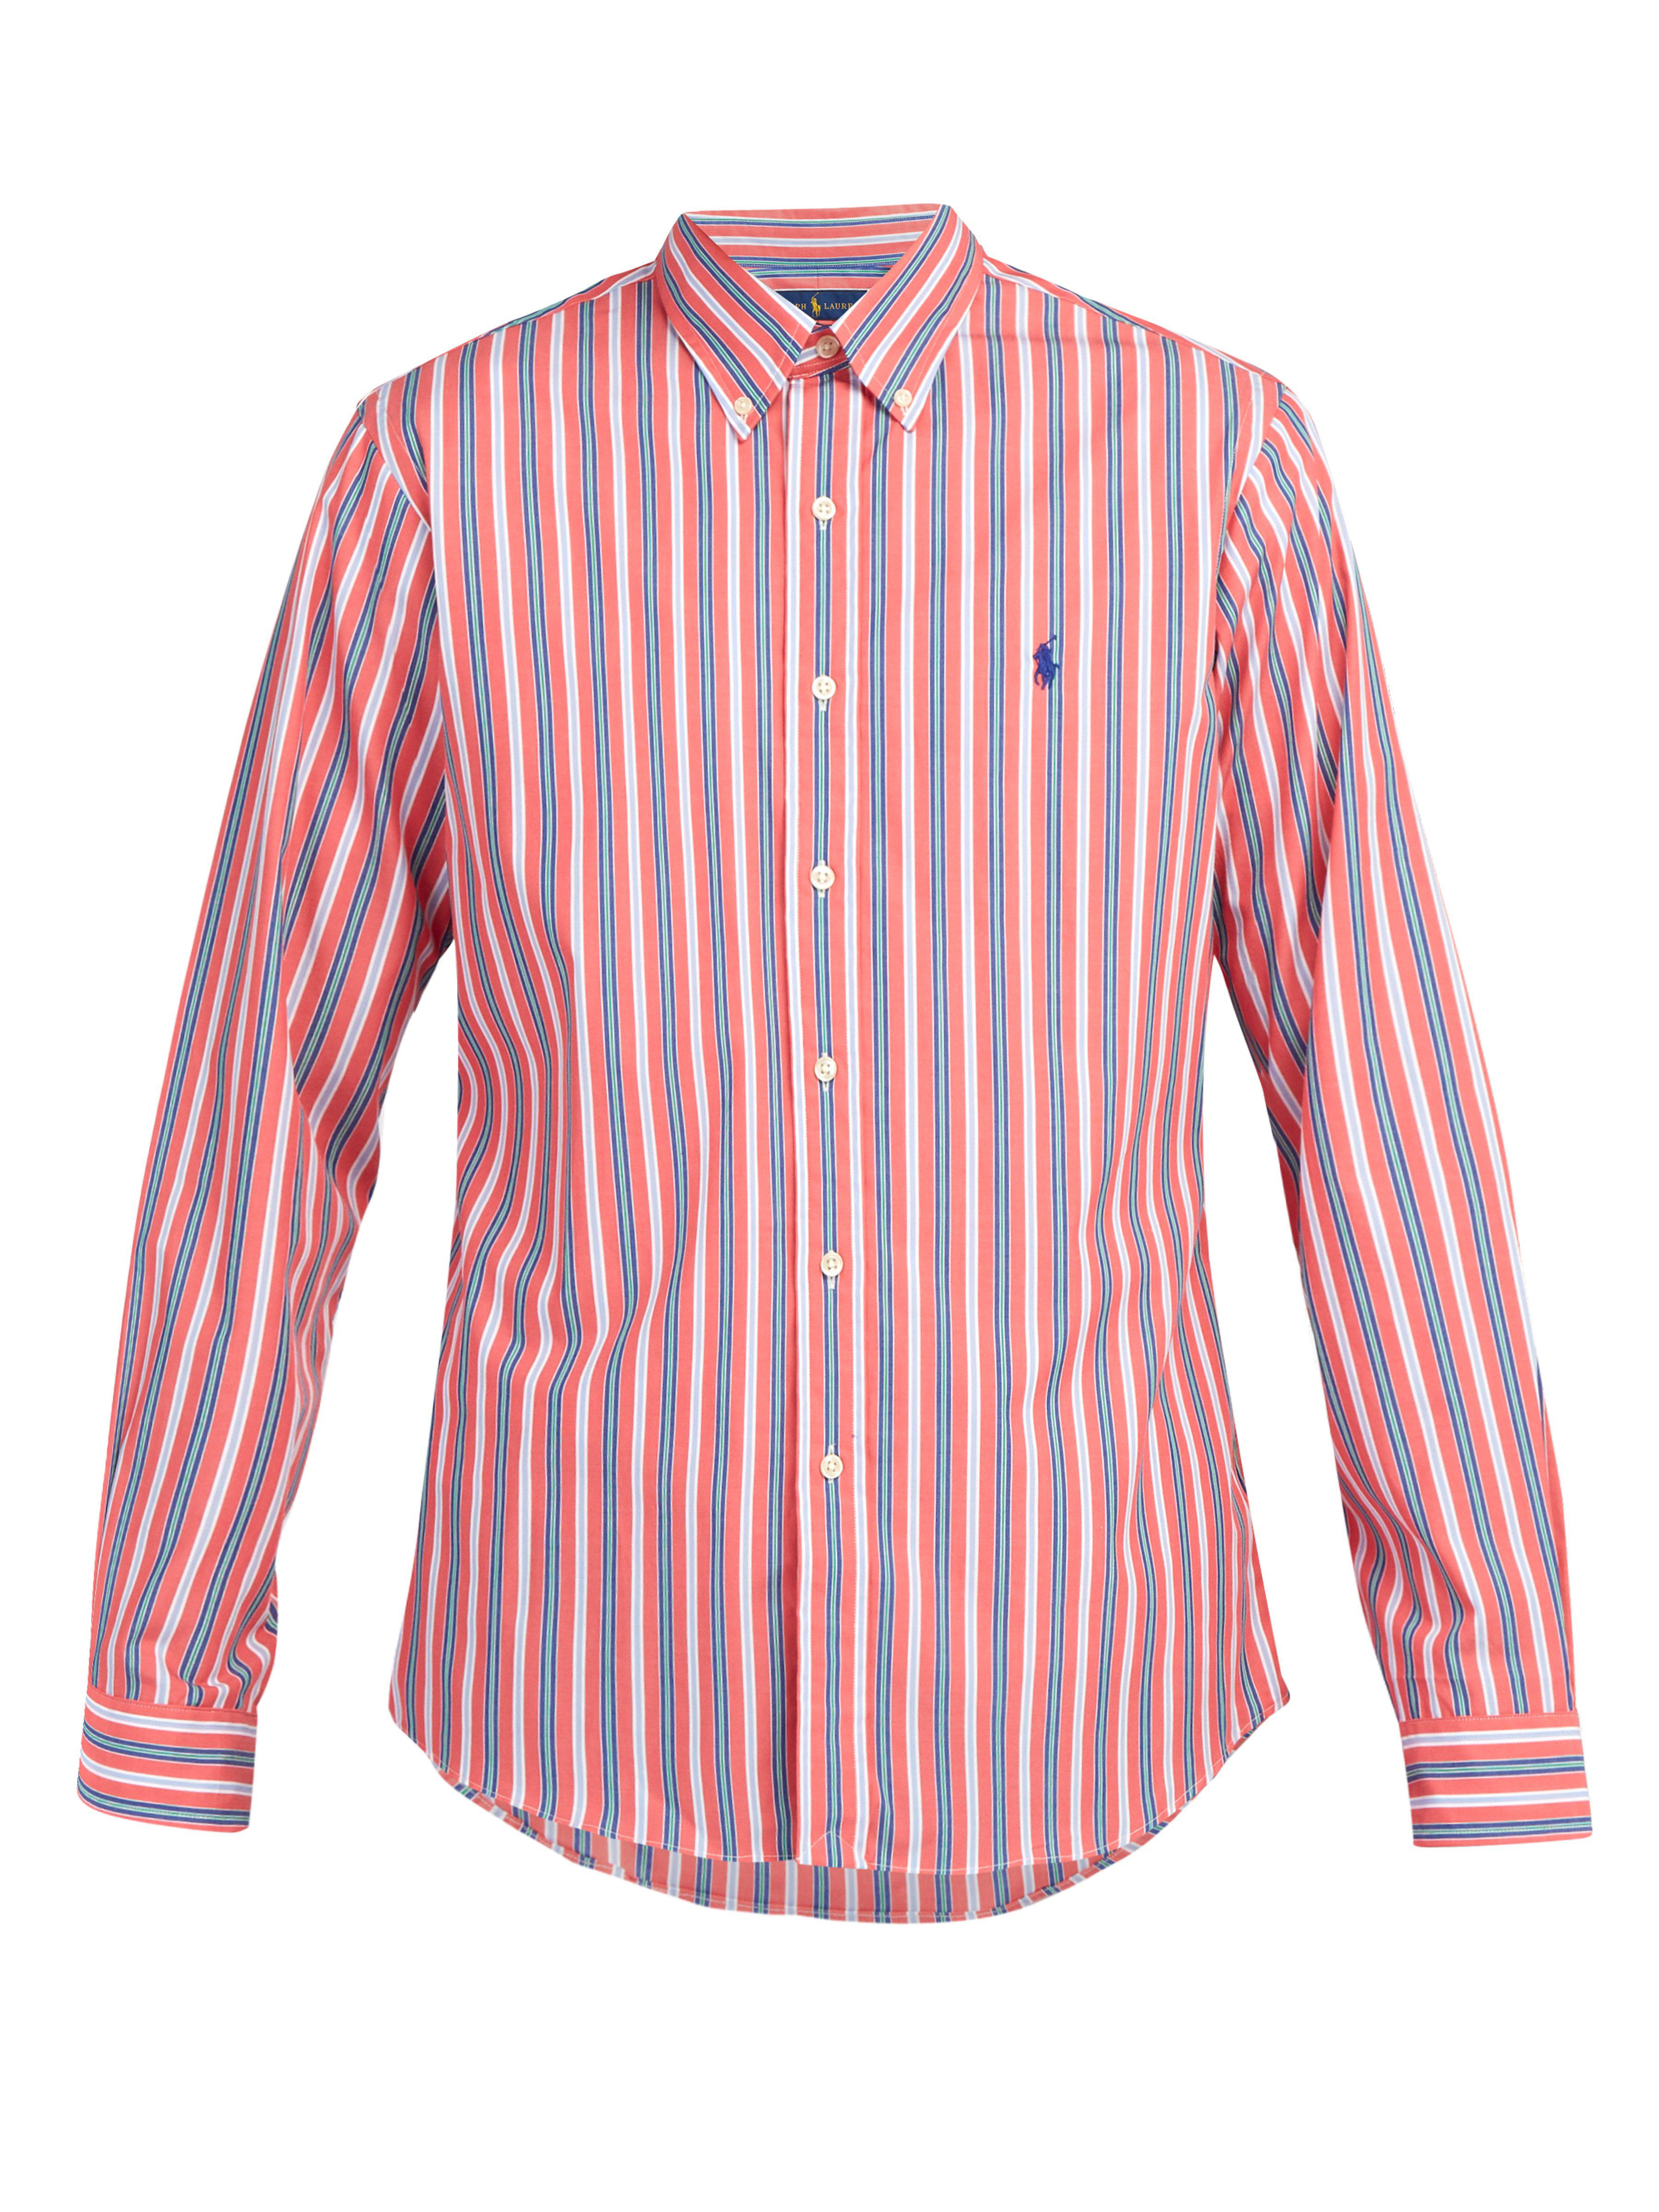 61449458b8 Polo Ralph Lauren Slim Fit Striped Cotton Poplin Shirt in Red for ...